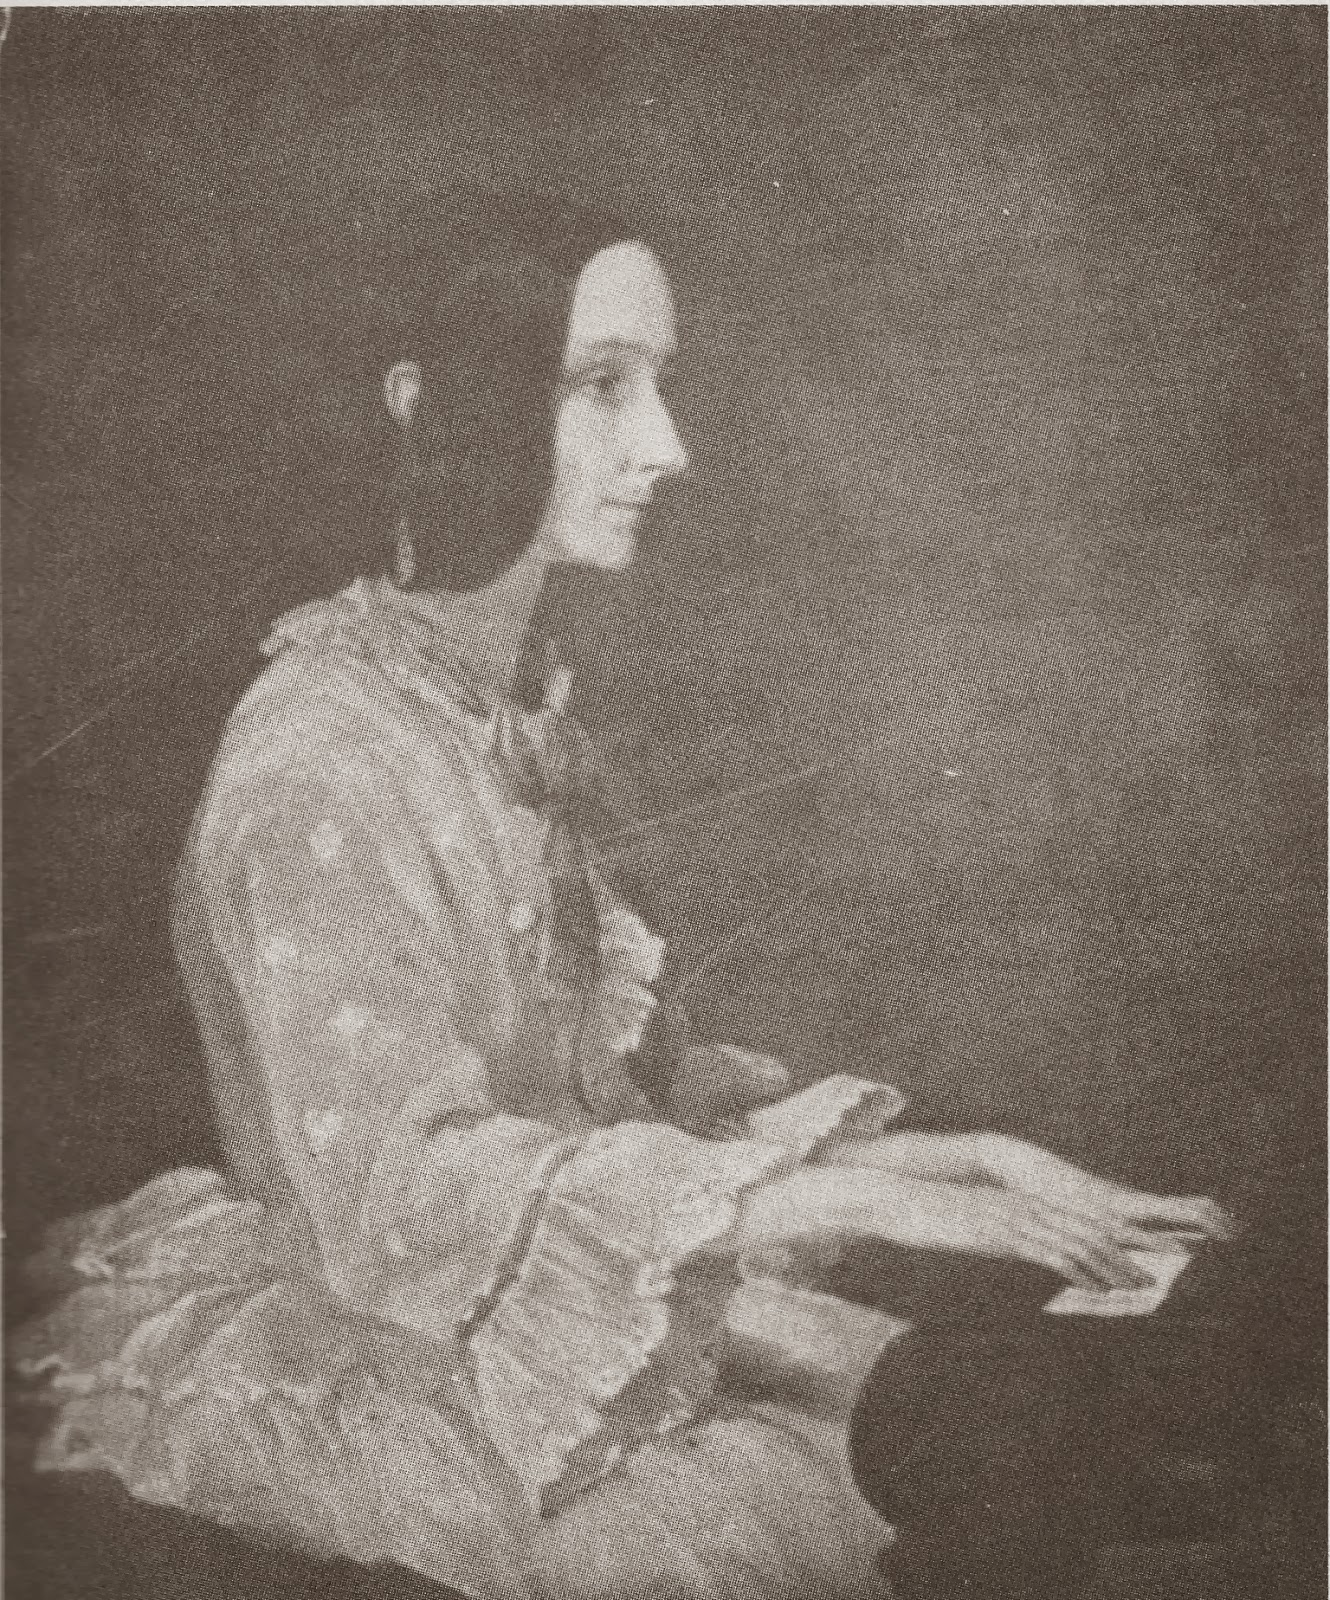 https://commons.wikimedia.org/wiki/File:Ada_Lovelace_in_1852.jpg